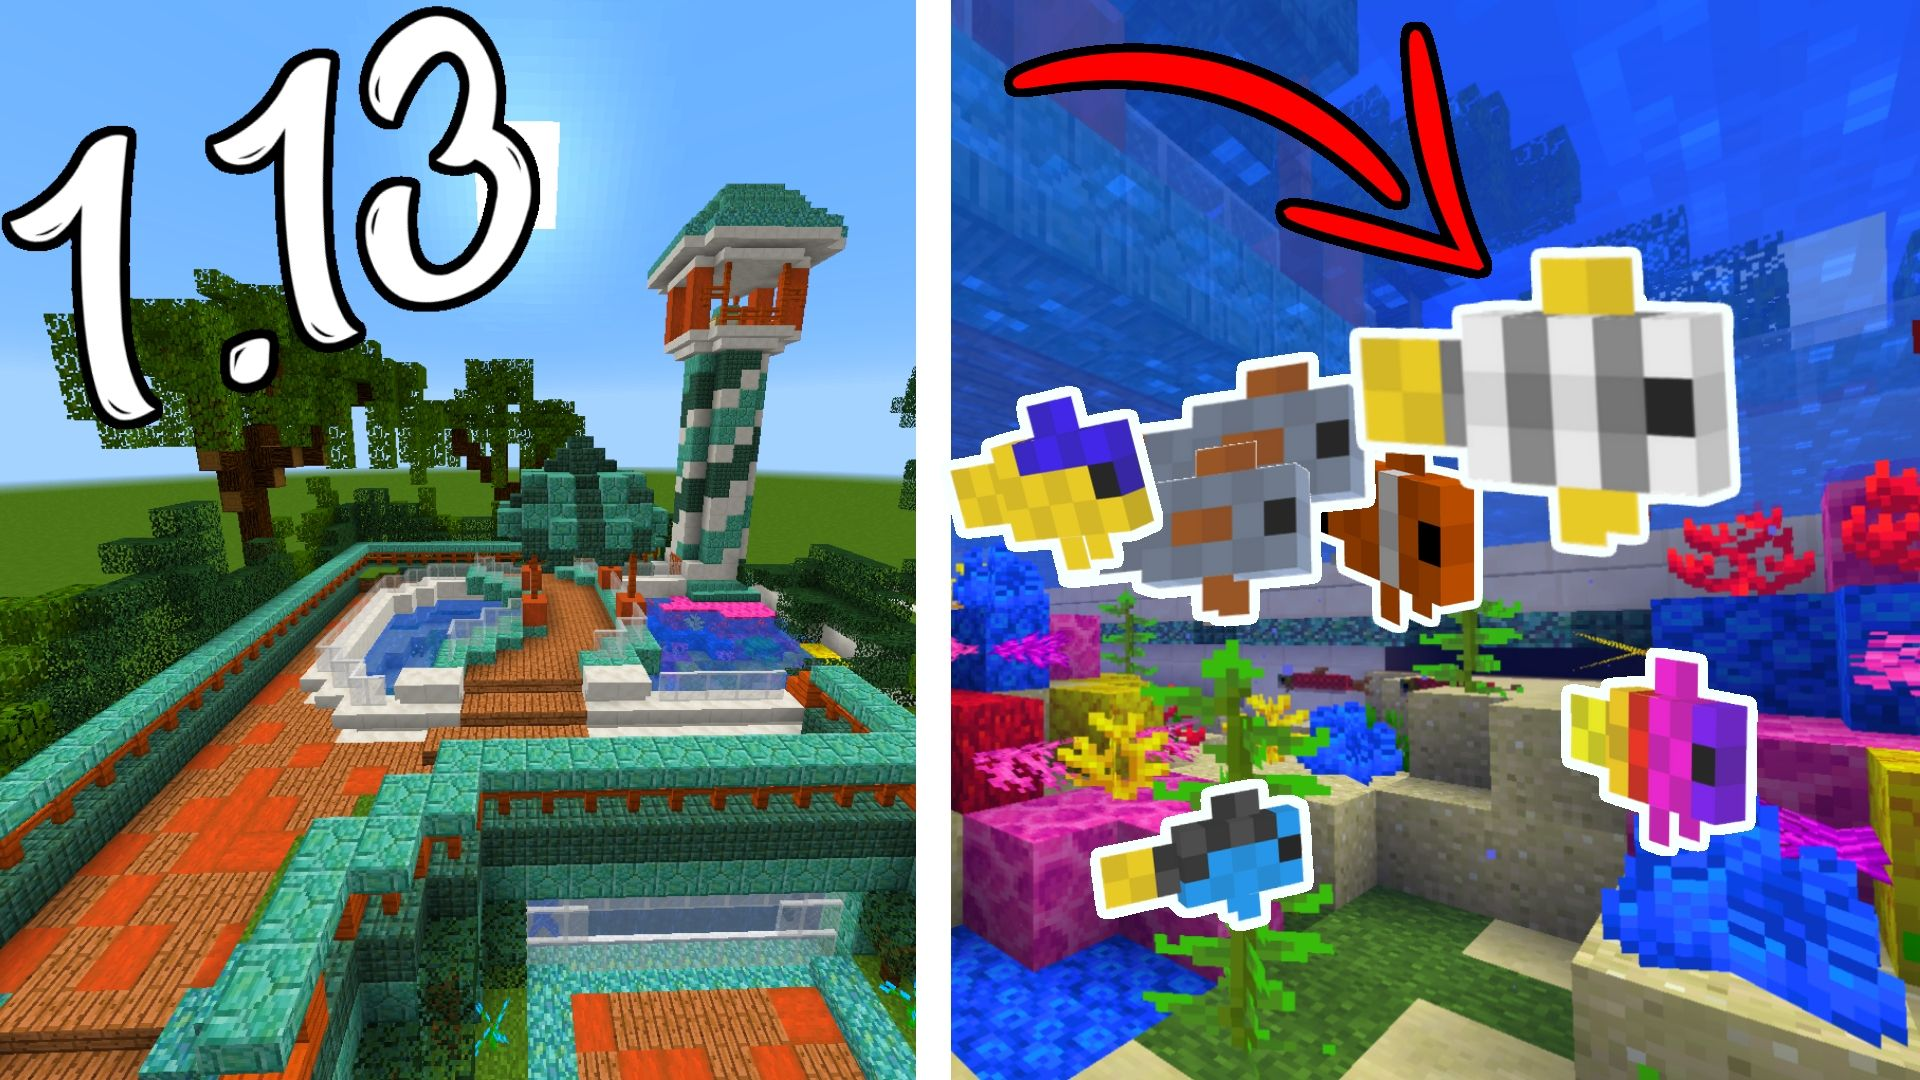 Minecraft Aquarium Ideas To Give You Some Inspiration For The New